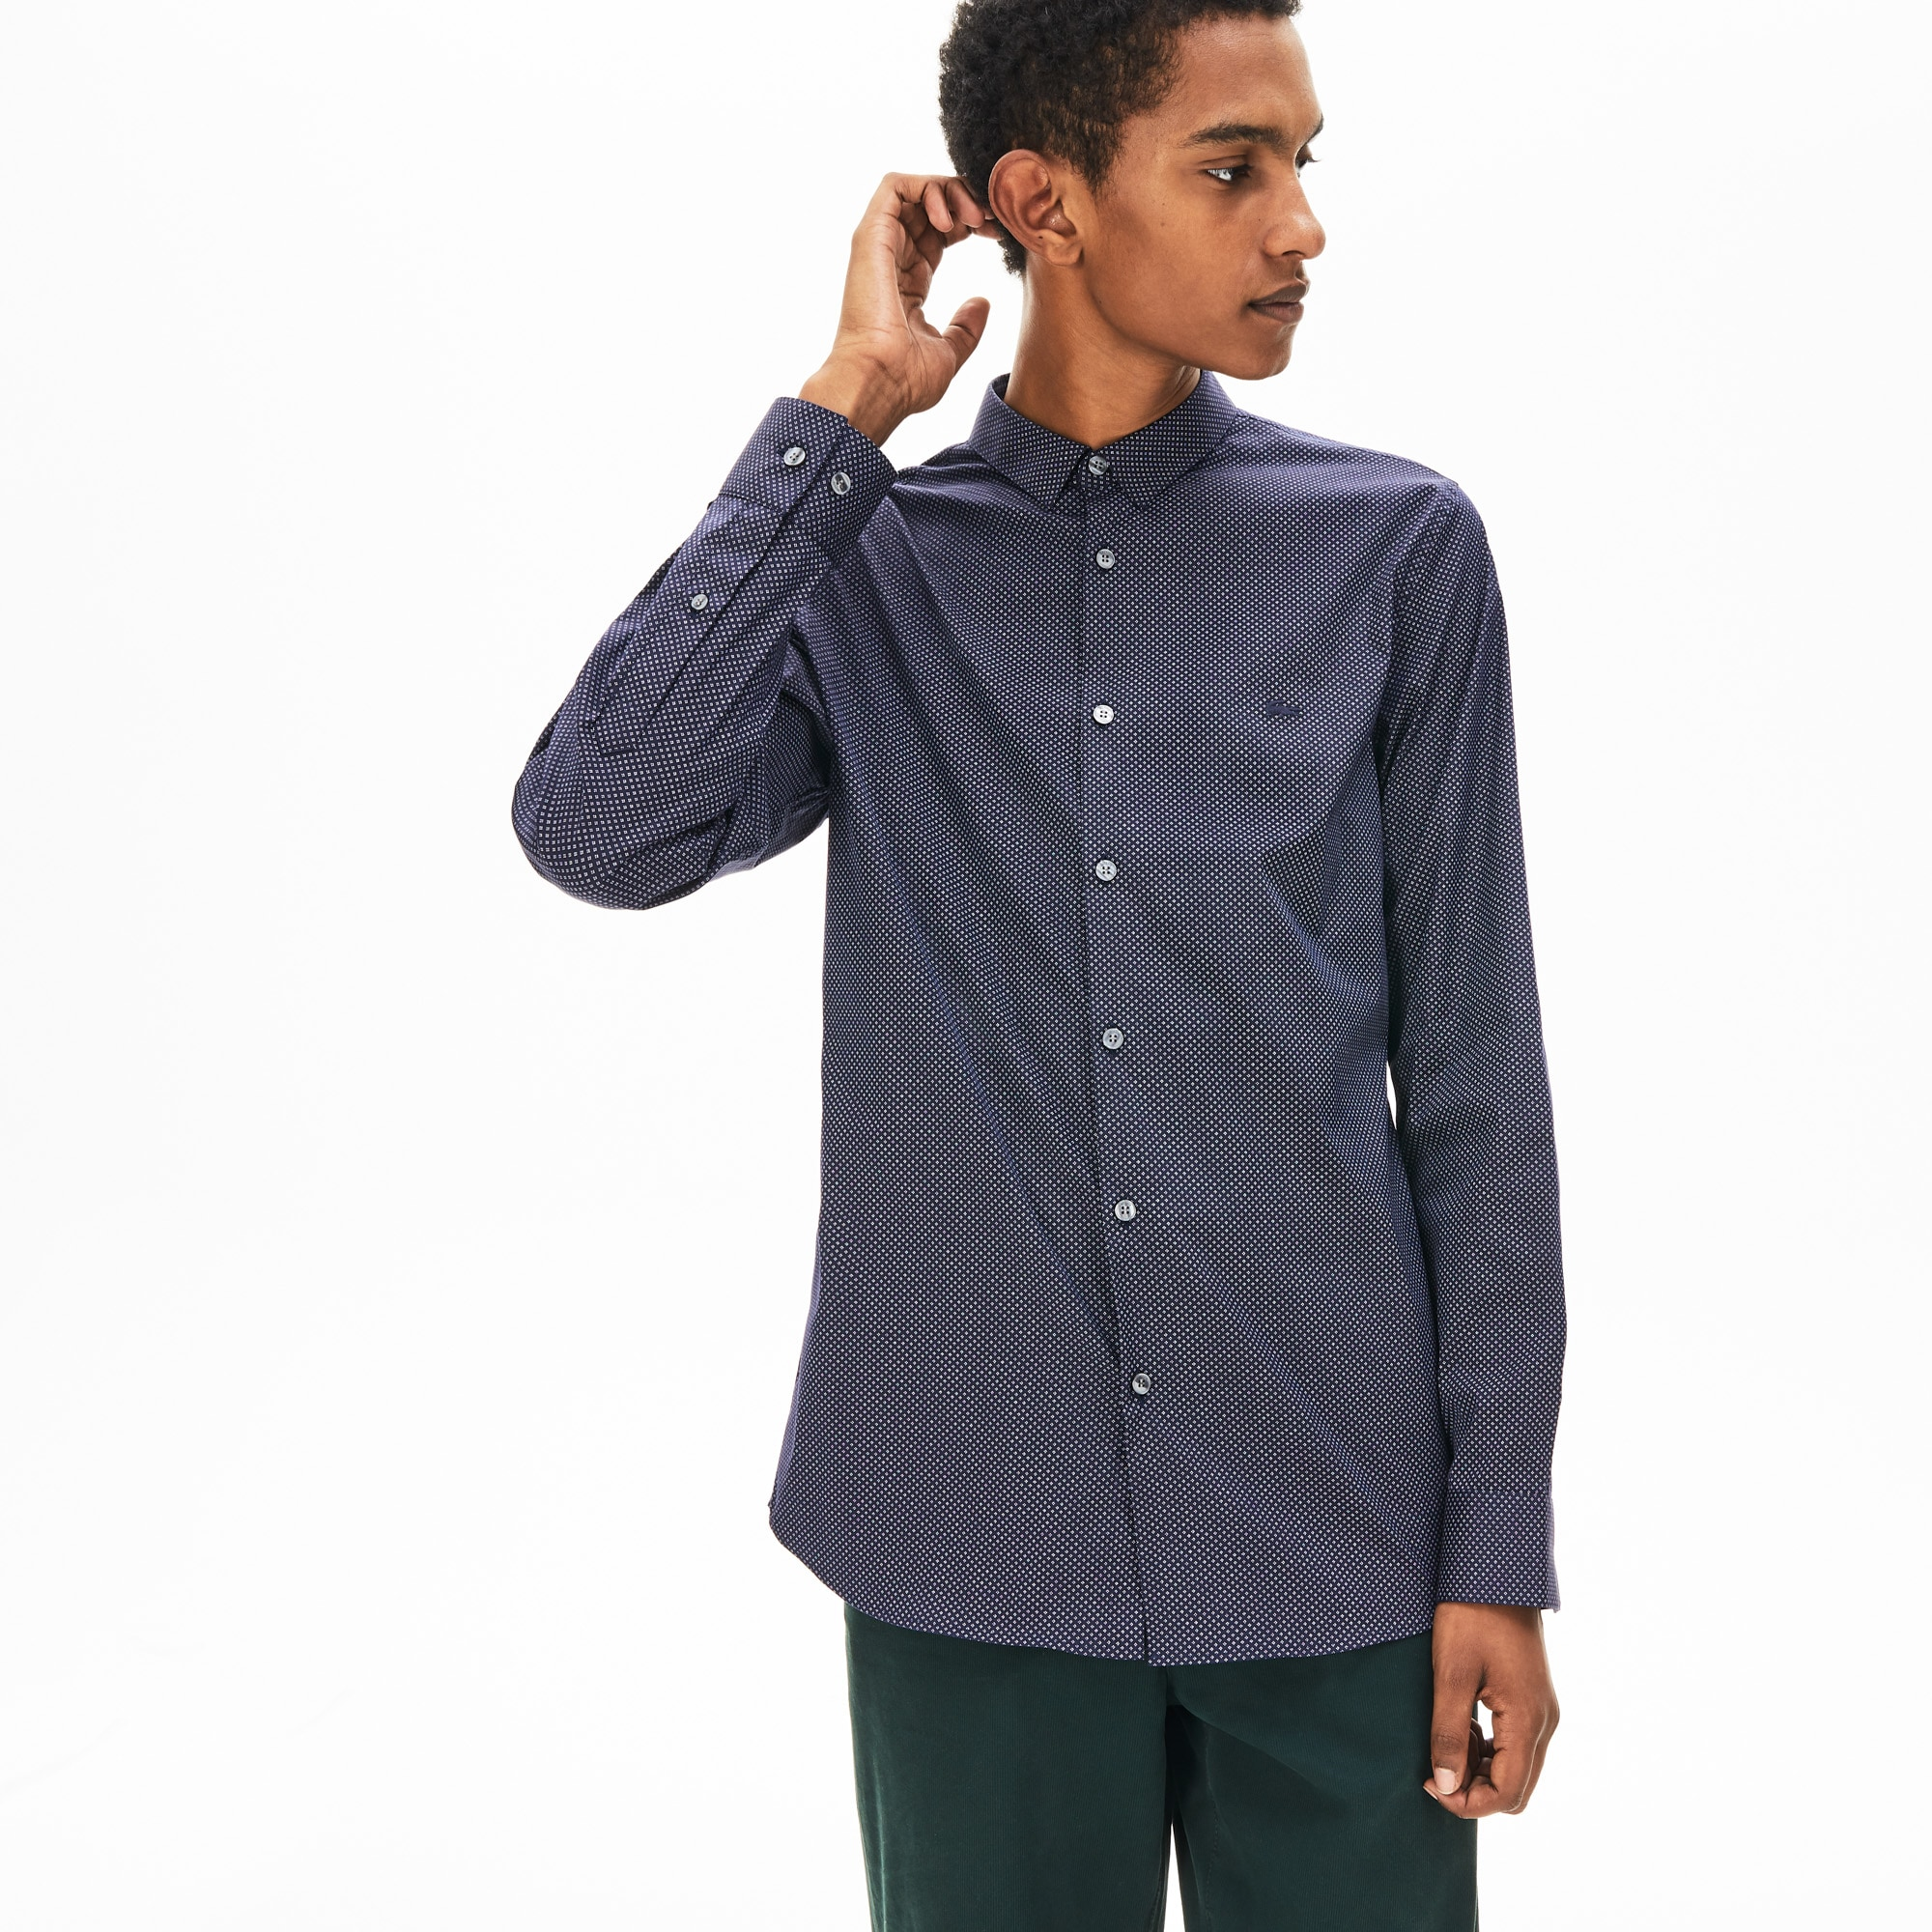 4f8bbe8e1f Button Down Shirts | Men's Fashion | LACOSTE